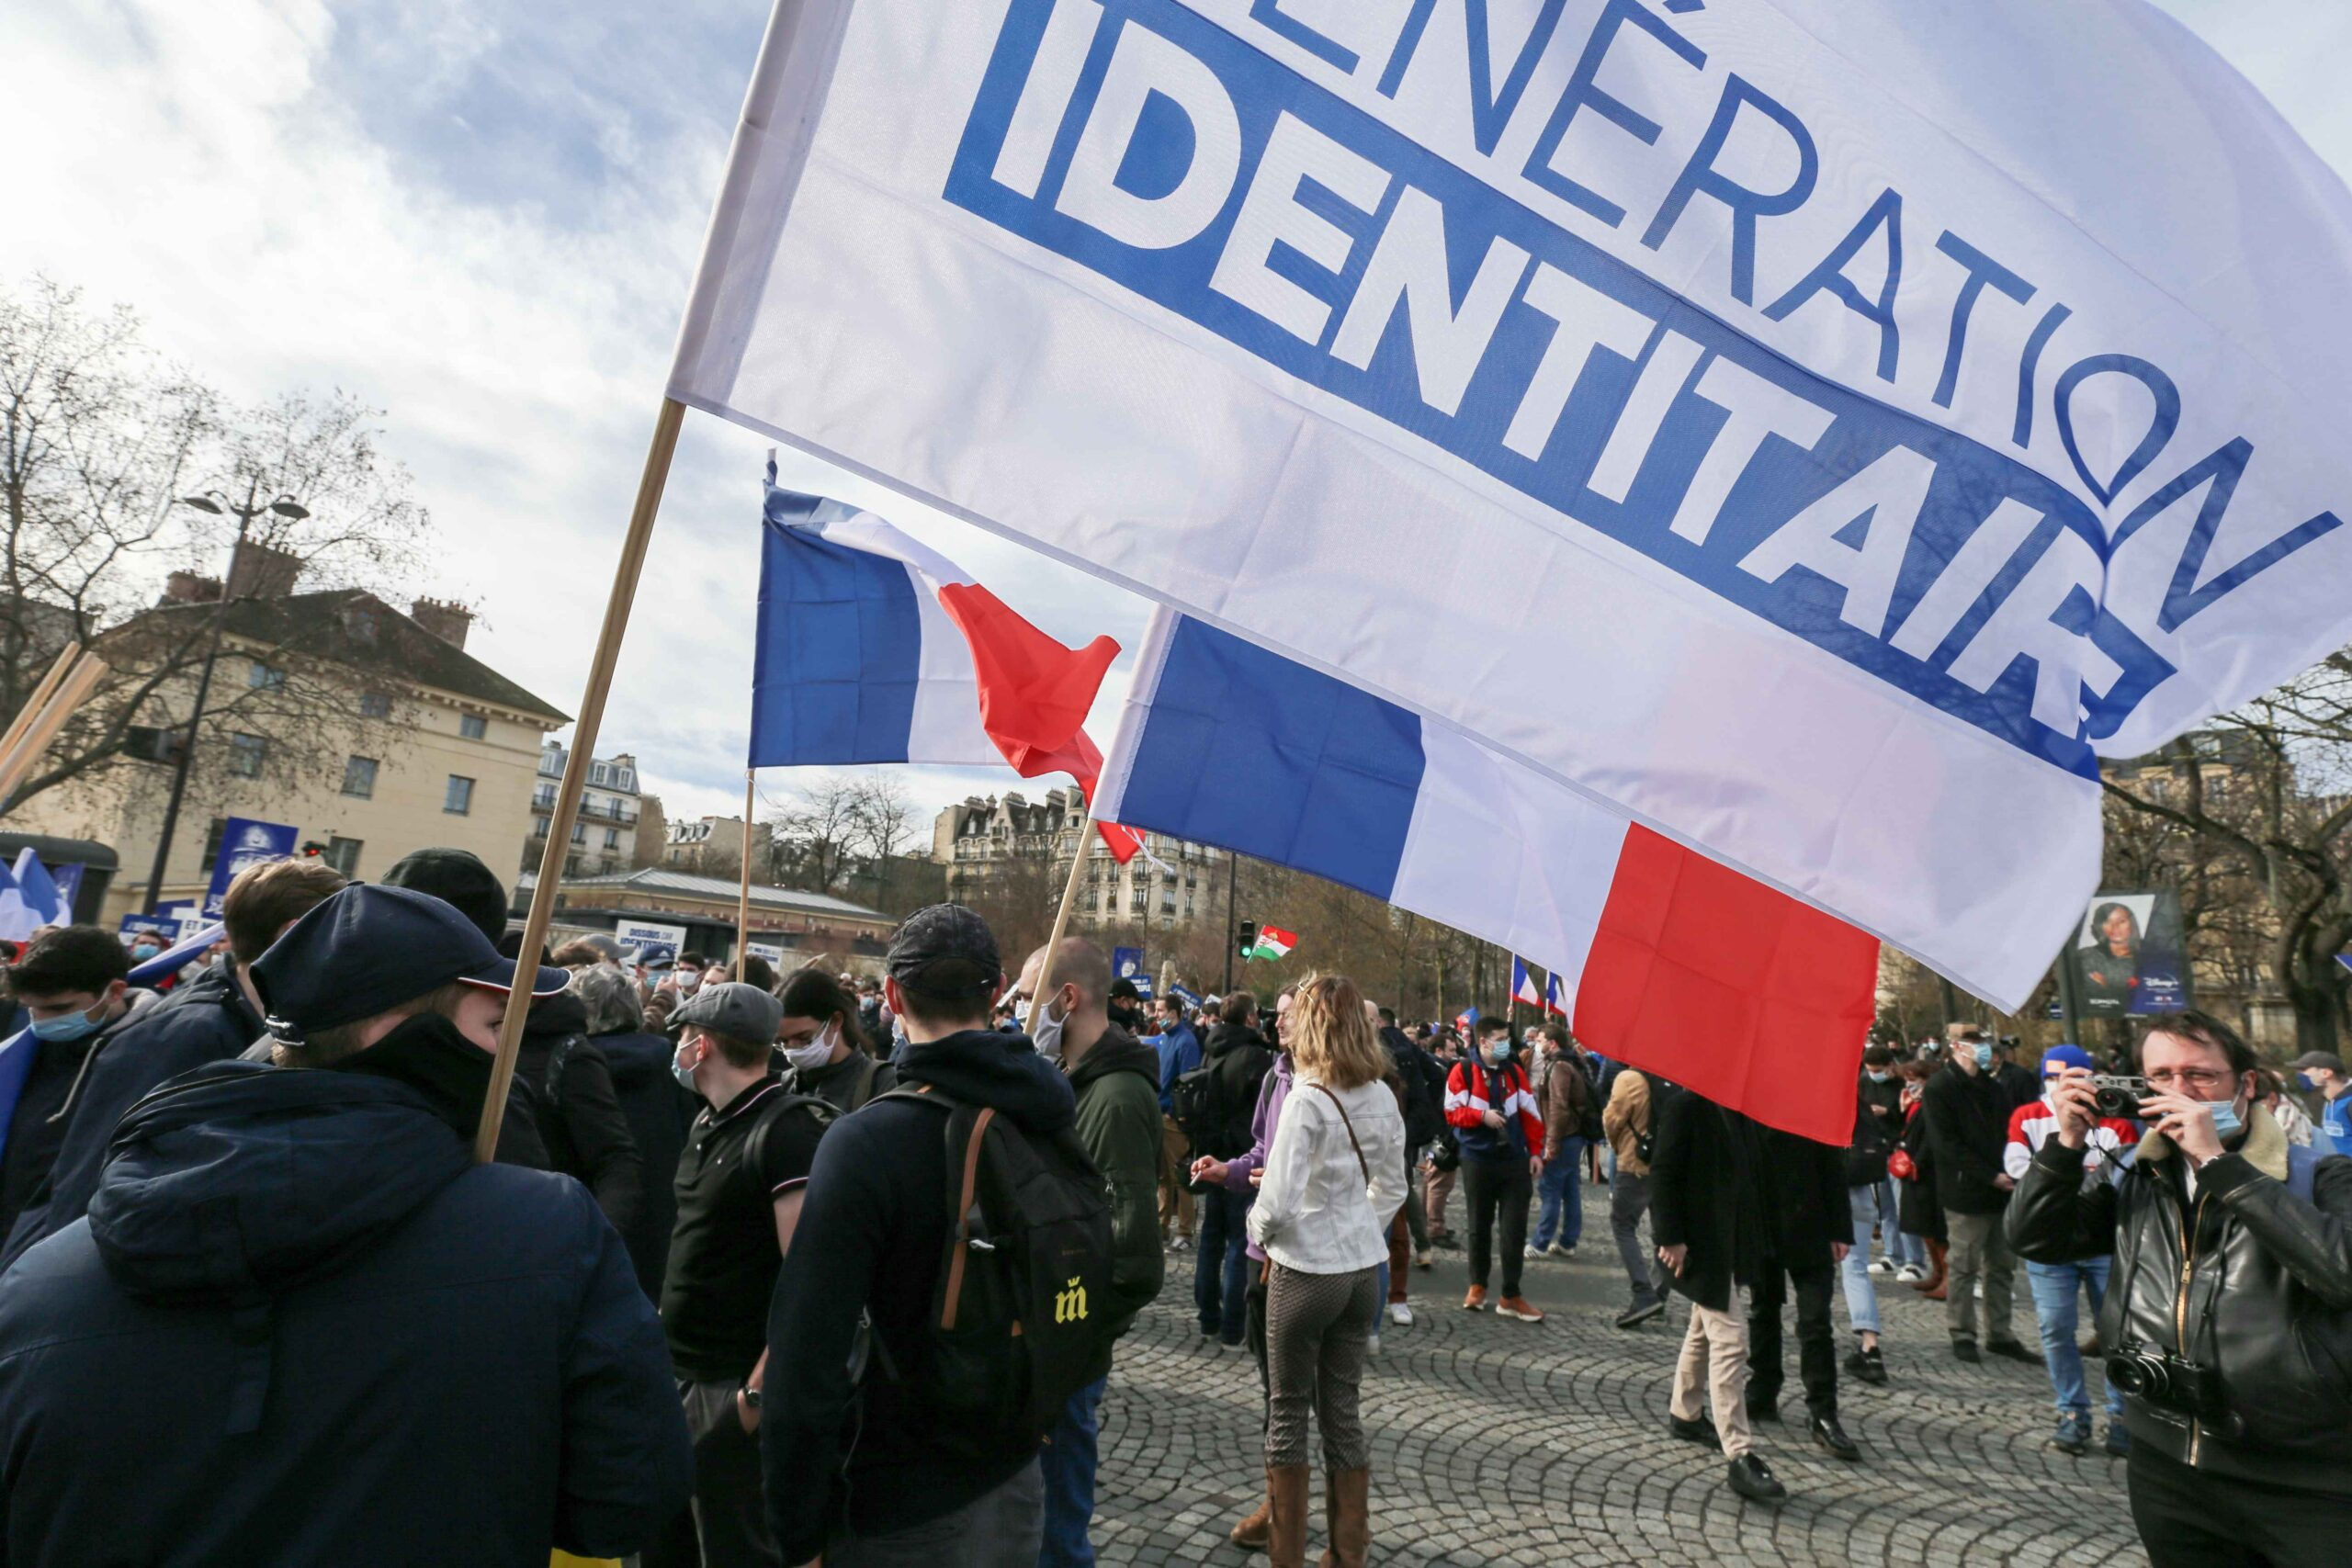 Members and supporters of far right group Generation Identitaire (GI) hold banners and placards during a protest against its potential dissolution in Place Denfert Rochereau, in Paris on February 20, 2021. The dissolution of Generation identitaire was evok